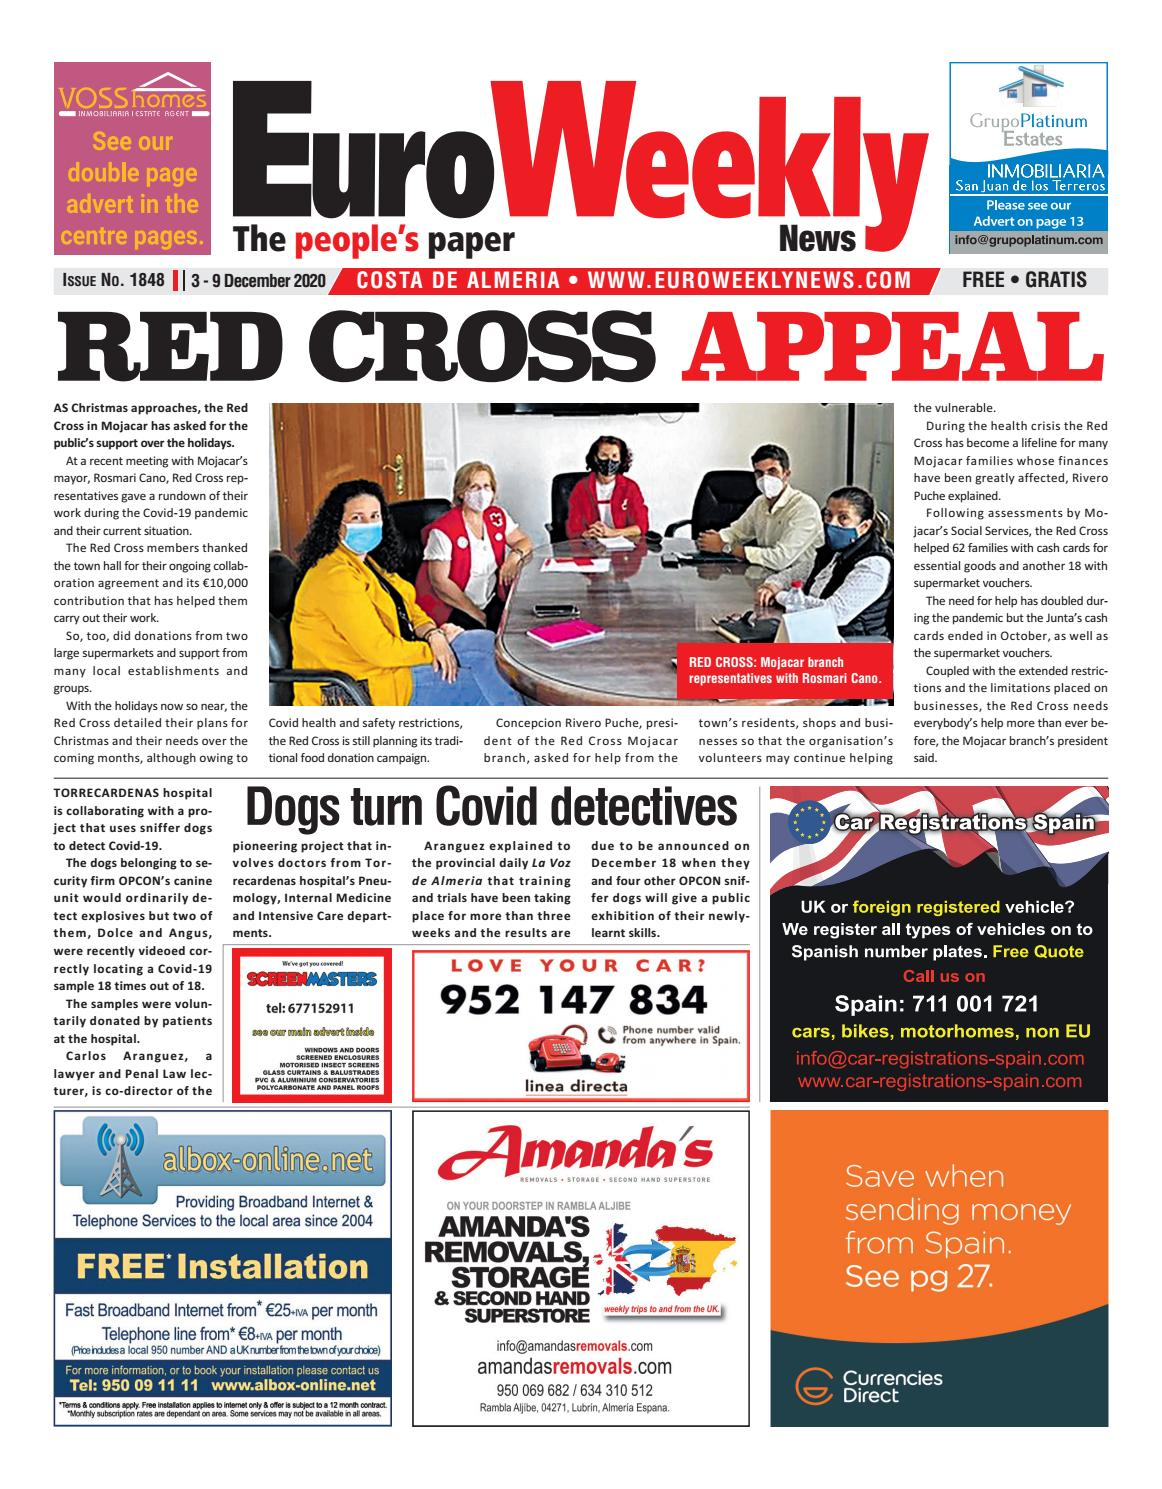 Euro Weekly News Costa De Almeria 3 9 December 2020 Issue 1848 By Euro Weekly News Media S A Issuu